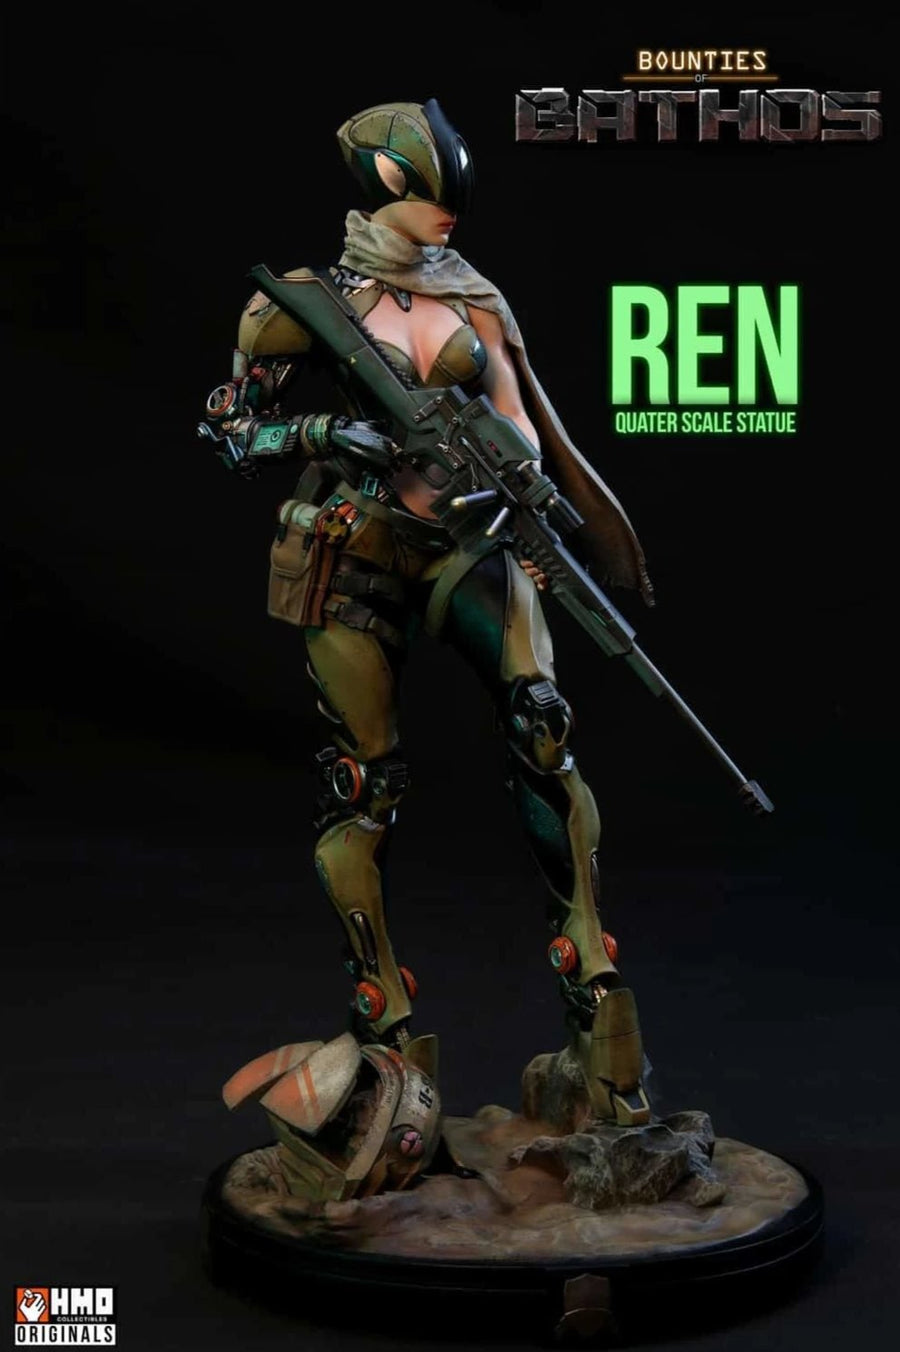 Bounties Of Bathos: REN 1/4 Scale Statue